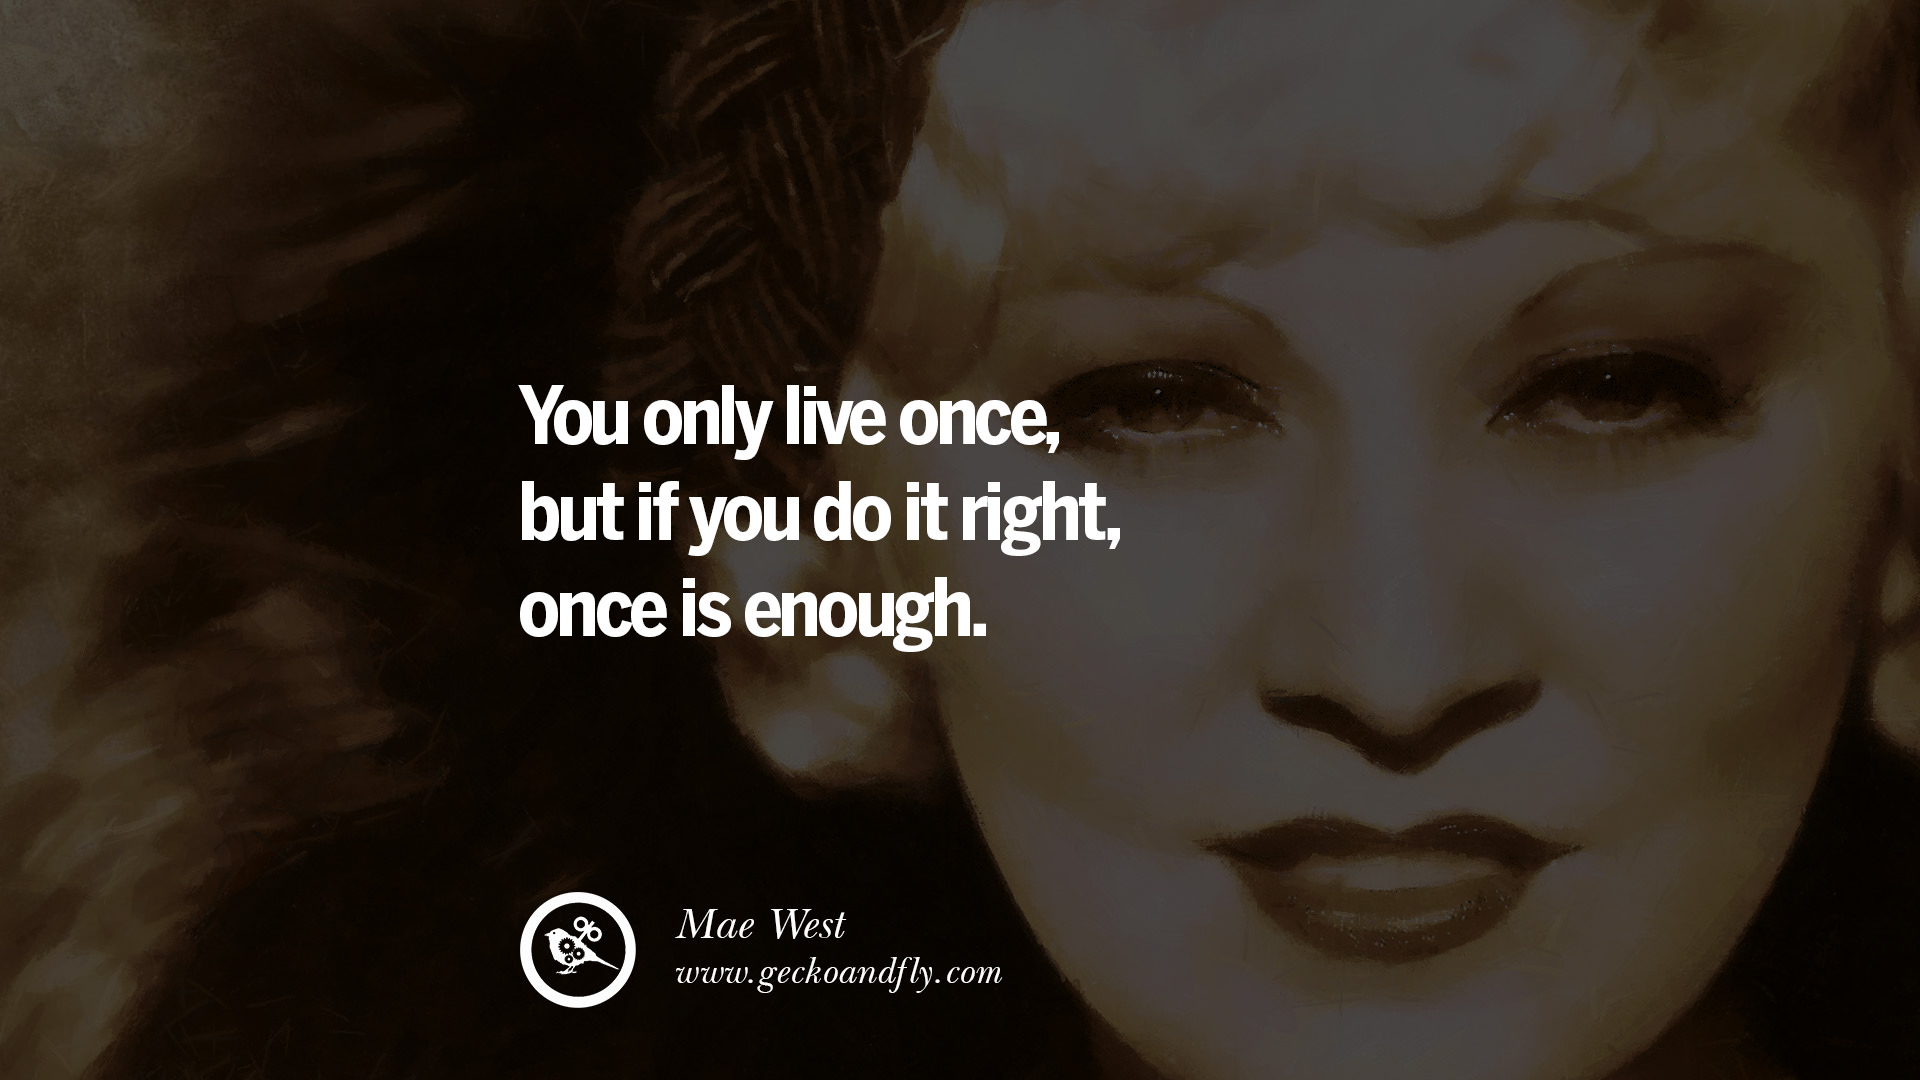 Womens Rights Quotes 10 Quotessuccessful Women In Celebration With The Second Wave